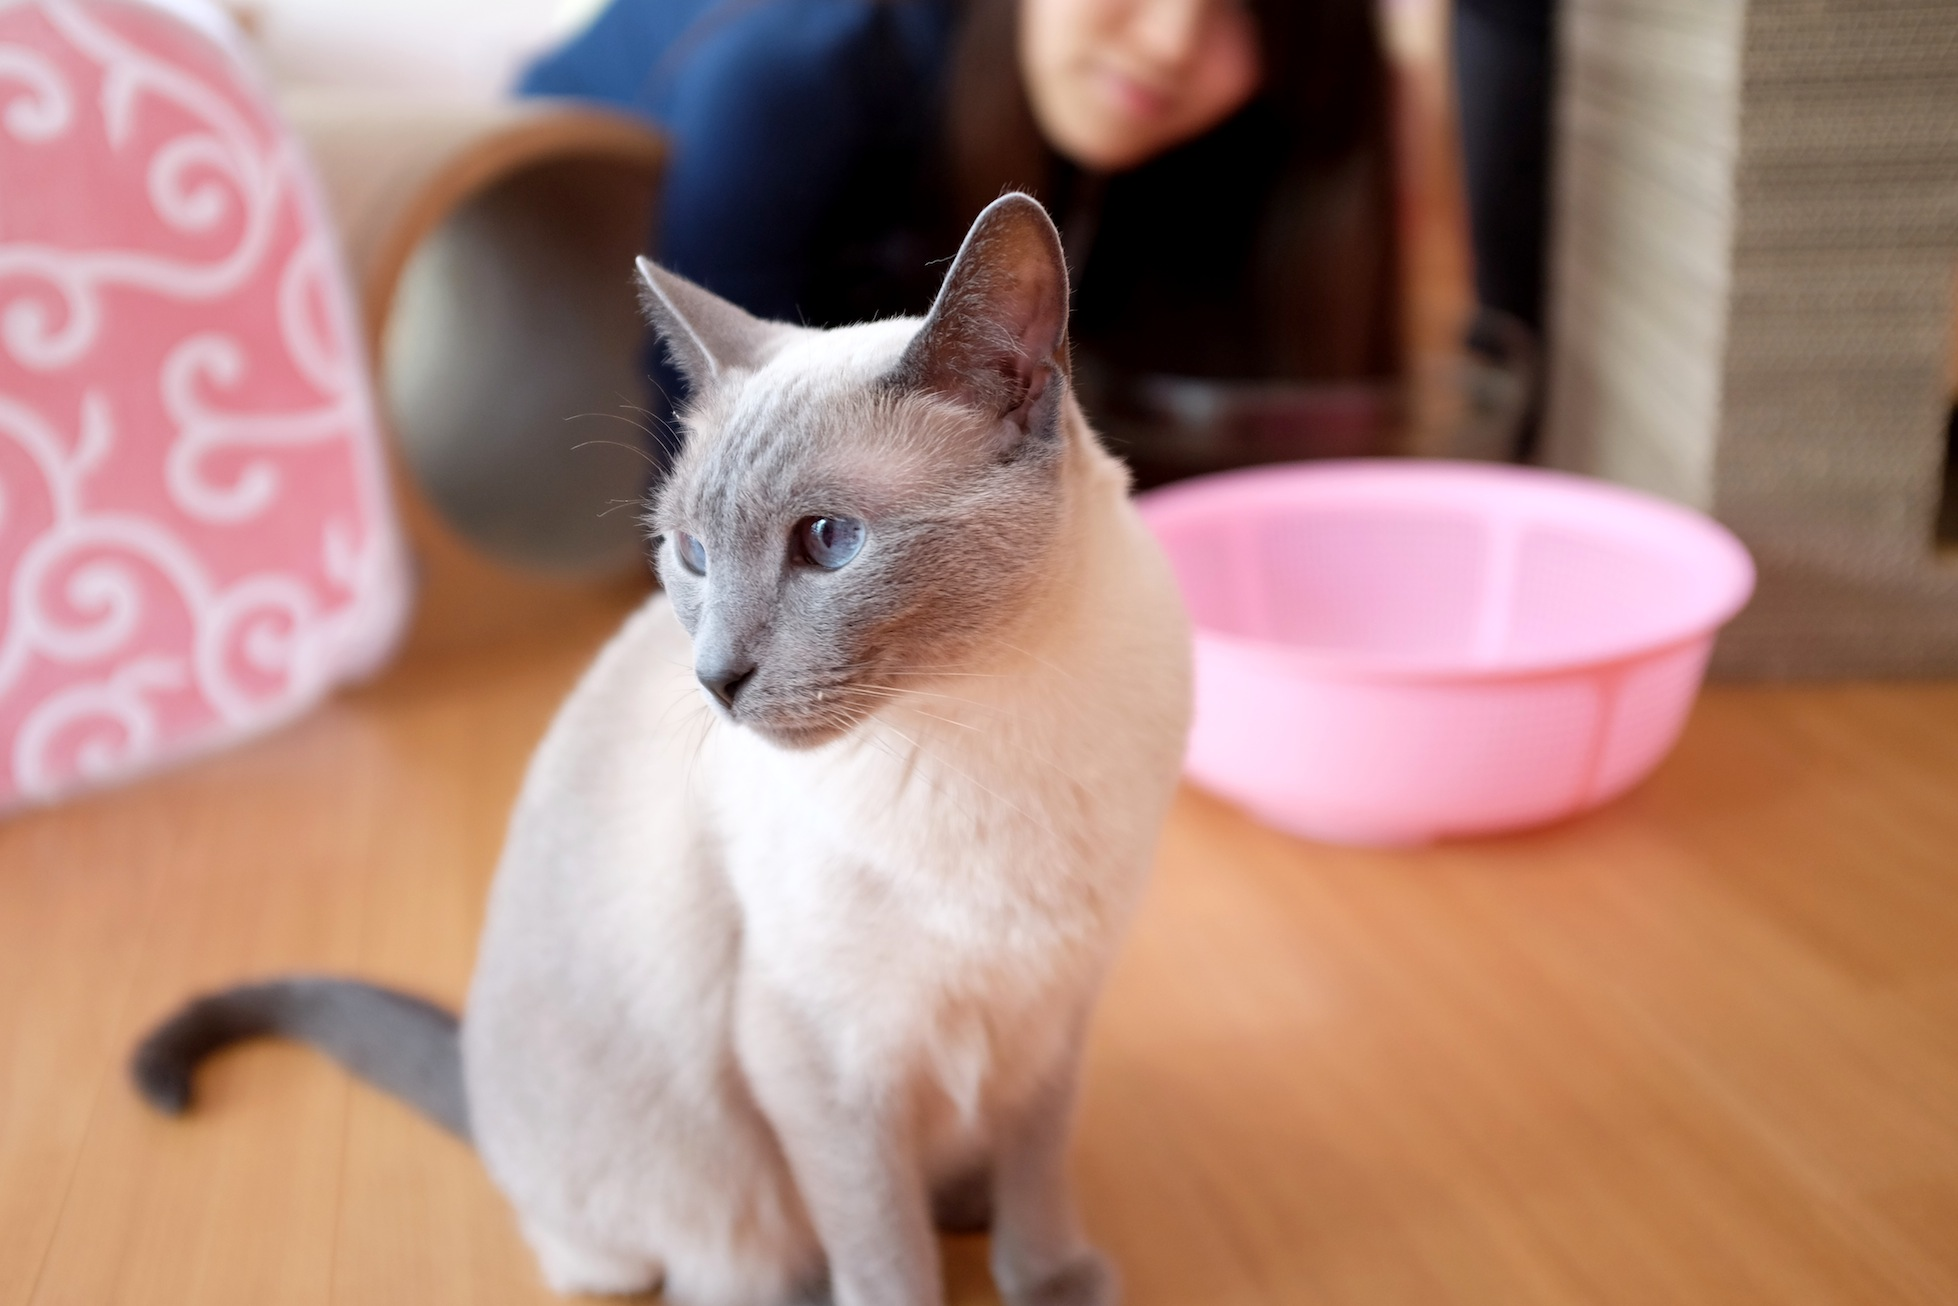 Hapineko, cat cafe, cats, crazy cat lady, kitten, cute, neko, kawaii, food, japan, Shibuya, meow, kitty, travel, japanese, nezuki